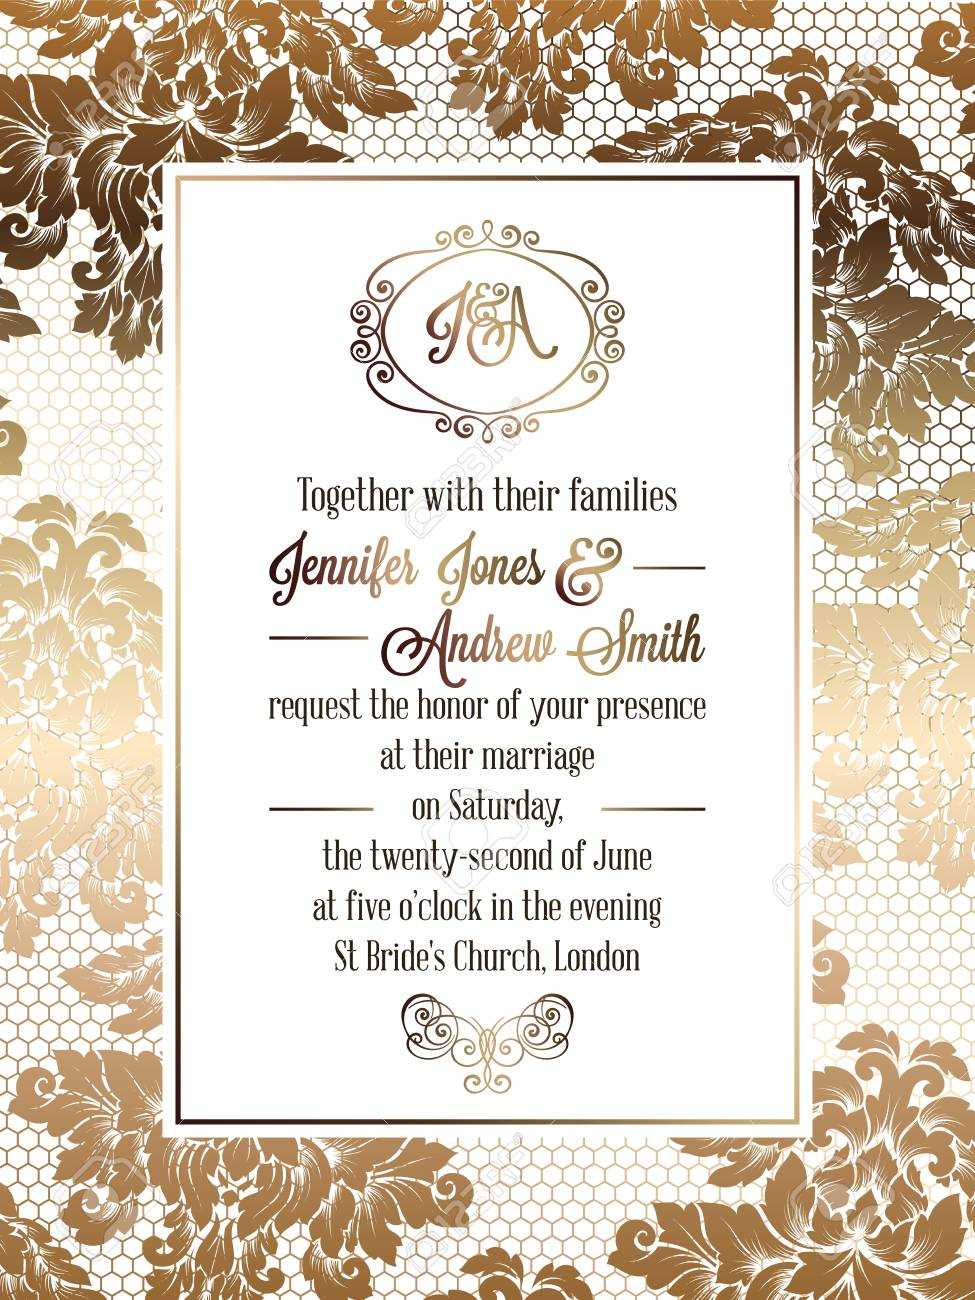 Vintage Baroque Style Wedding Invitation Card Template.. Elegant.. In Invitation Cards Templates For Marriage